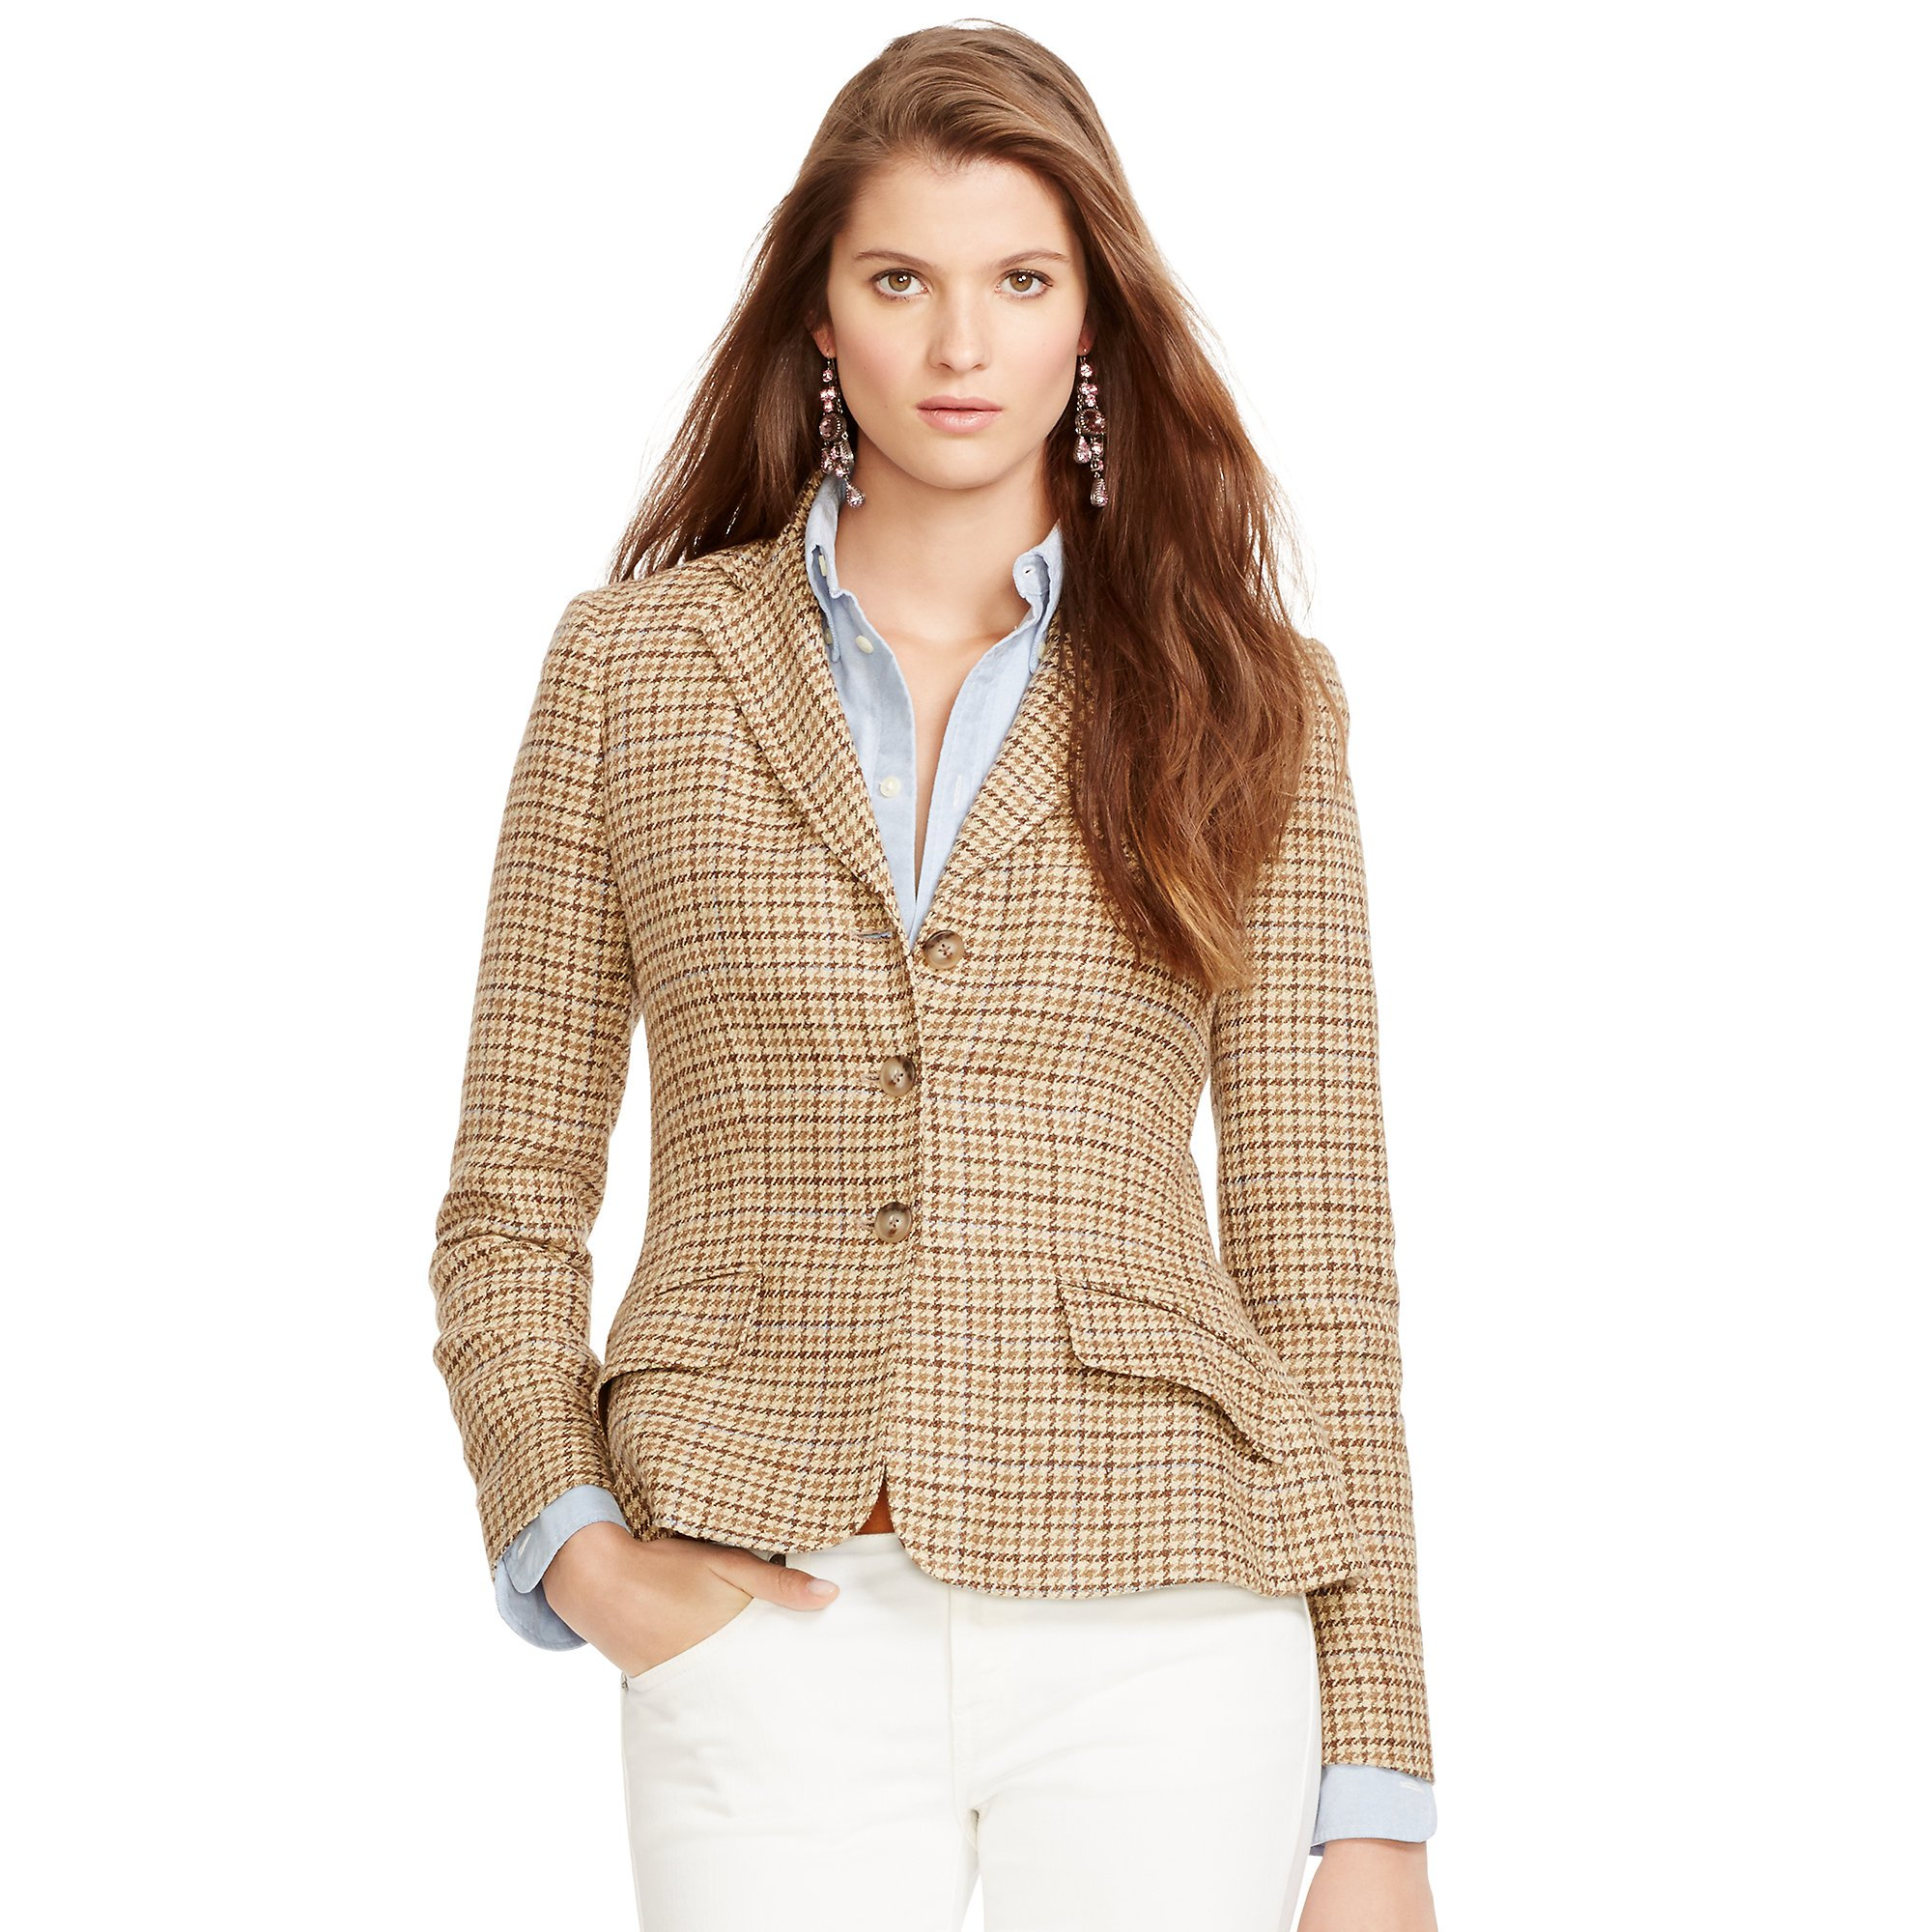 Ralph lauren womens jackets